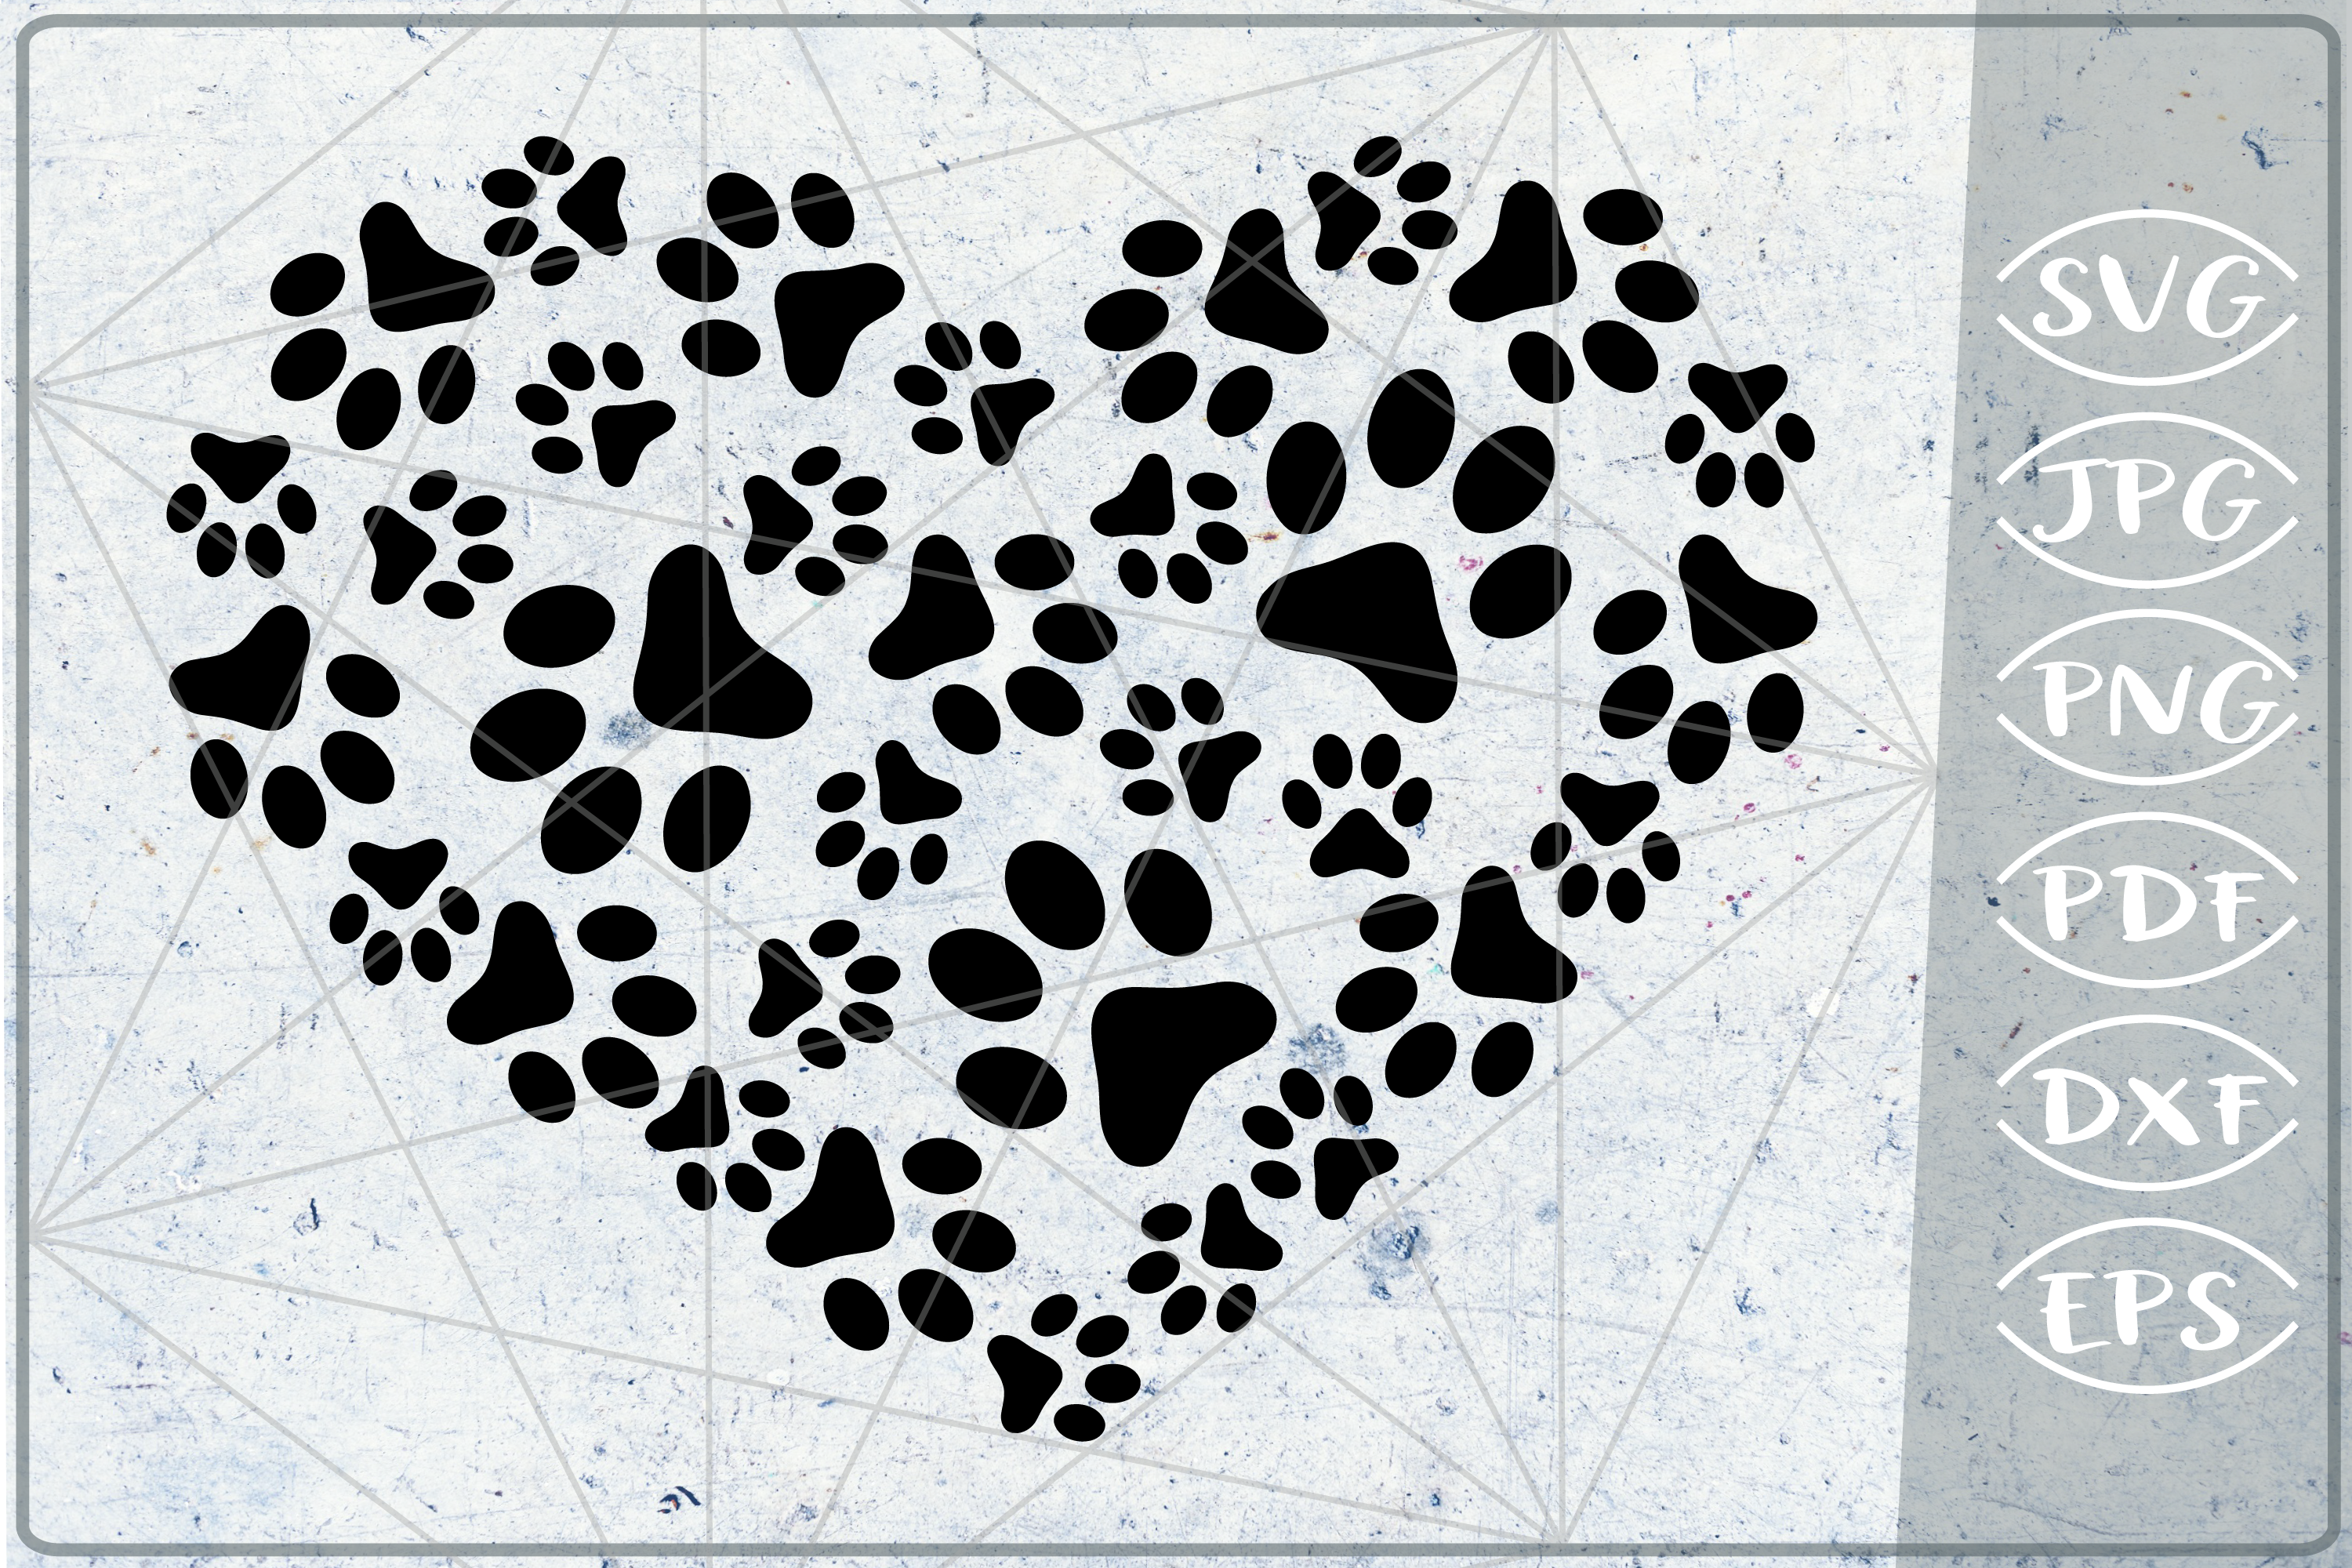 Download Free Paws Print Heart Love Grafik Von Cute Graphic Creative Fabrica for Cricut Explore, Silhouette and other cutting machines.